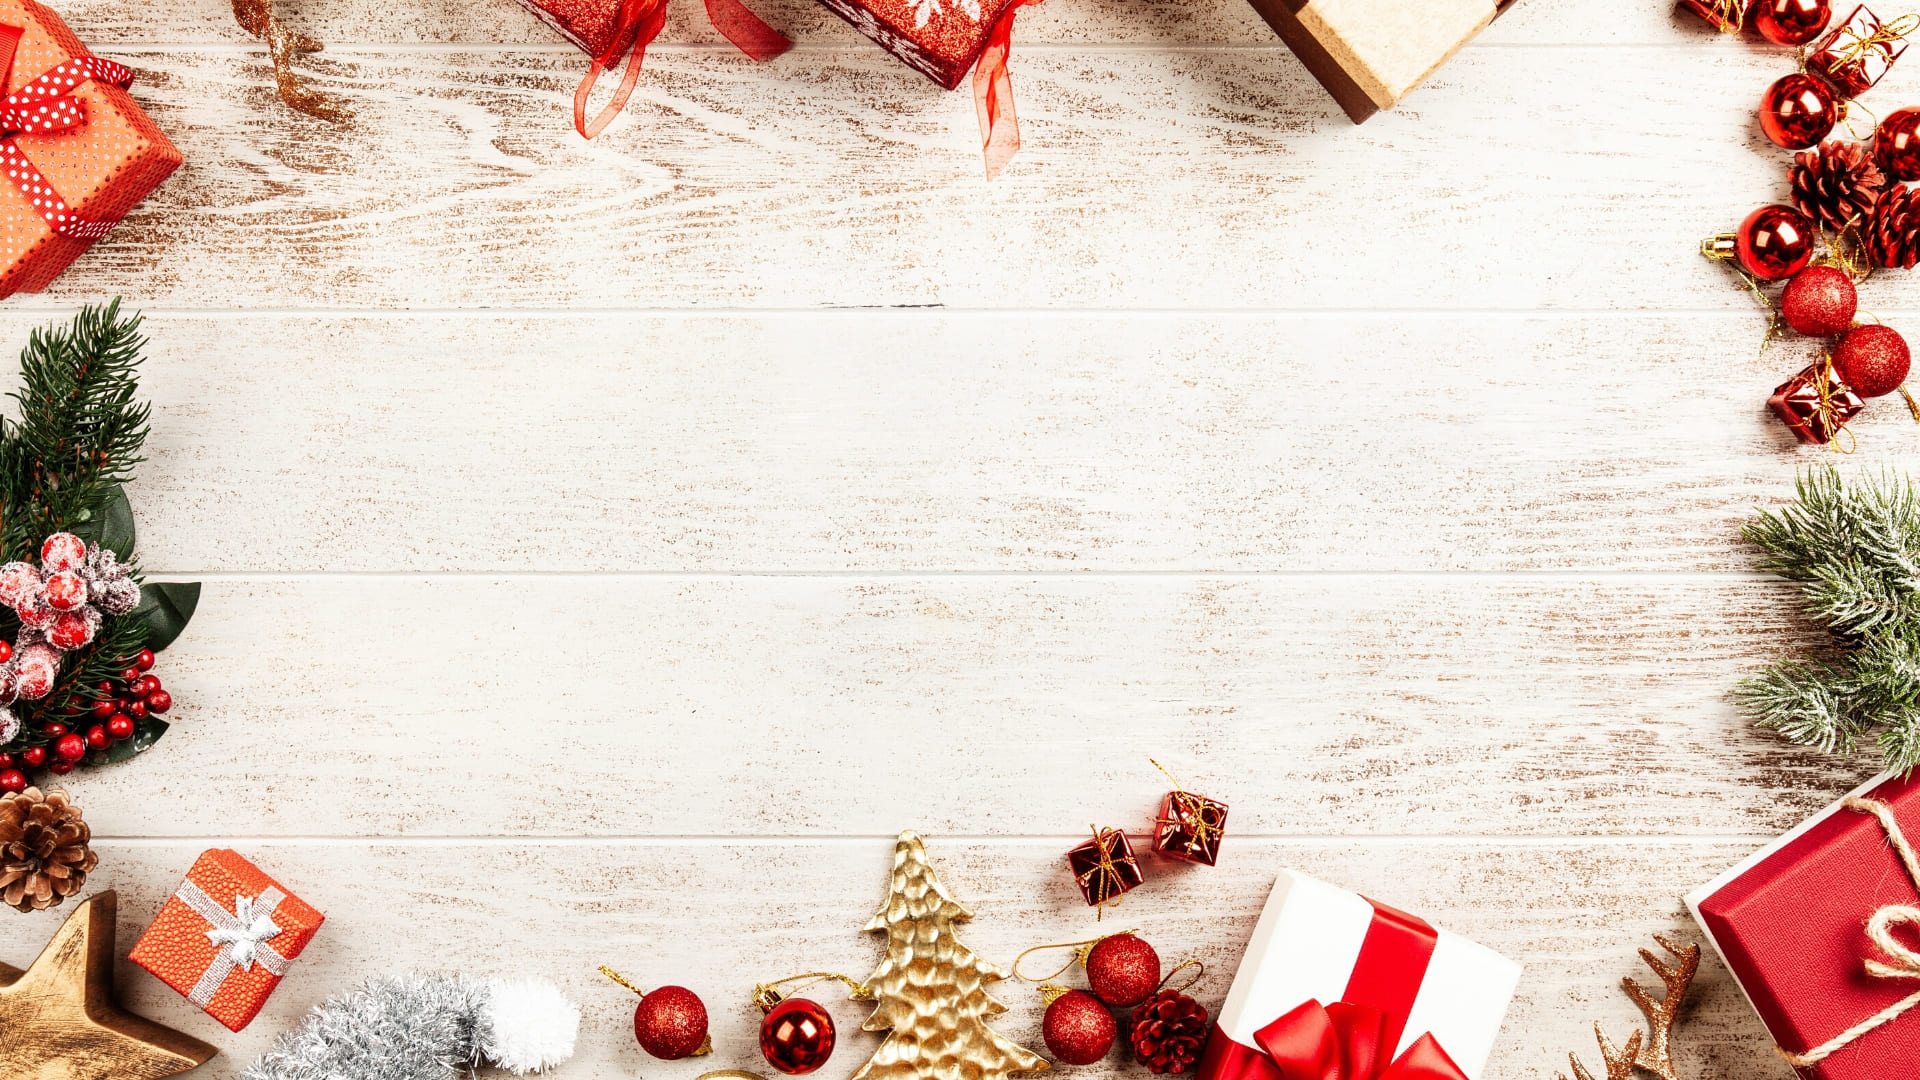 Christmas background wallpapers